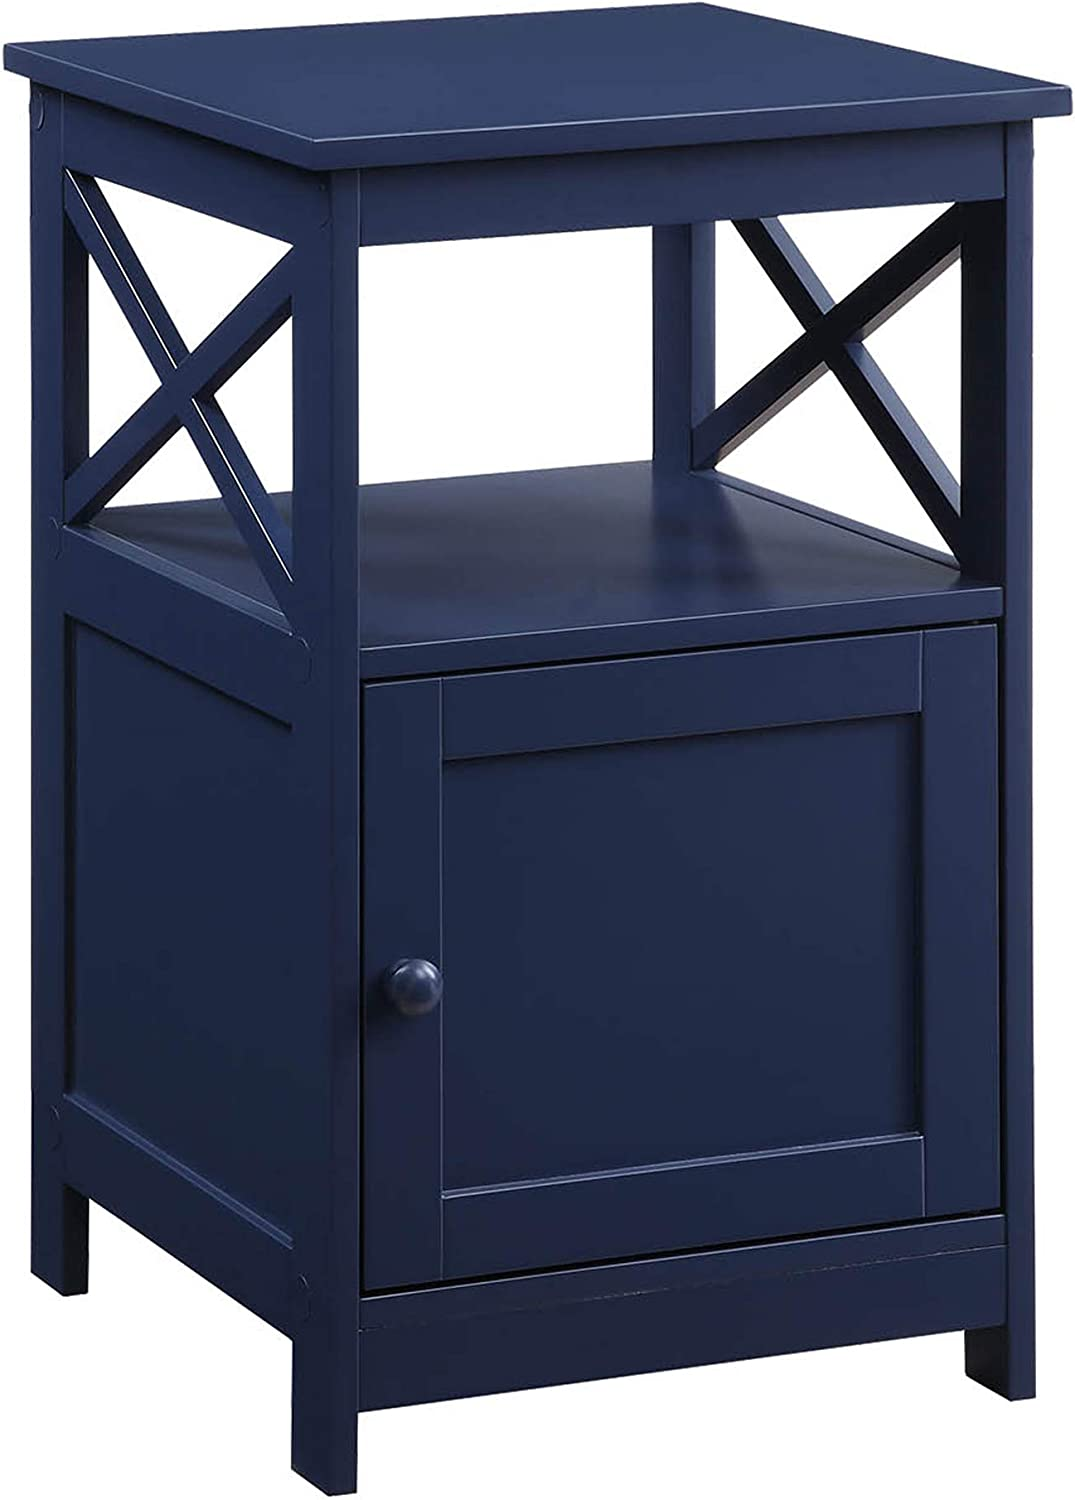 Convenience Concepts Oxford End Table with Cabinet, Cobalt Blue